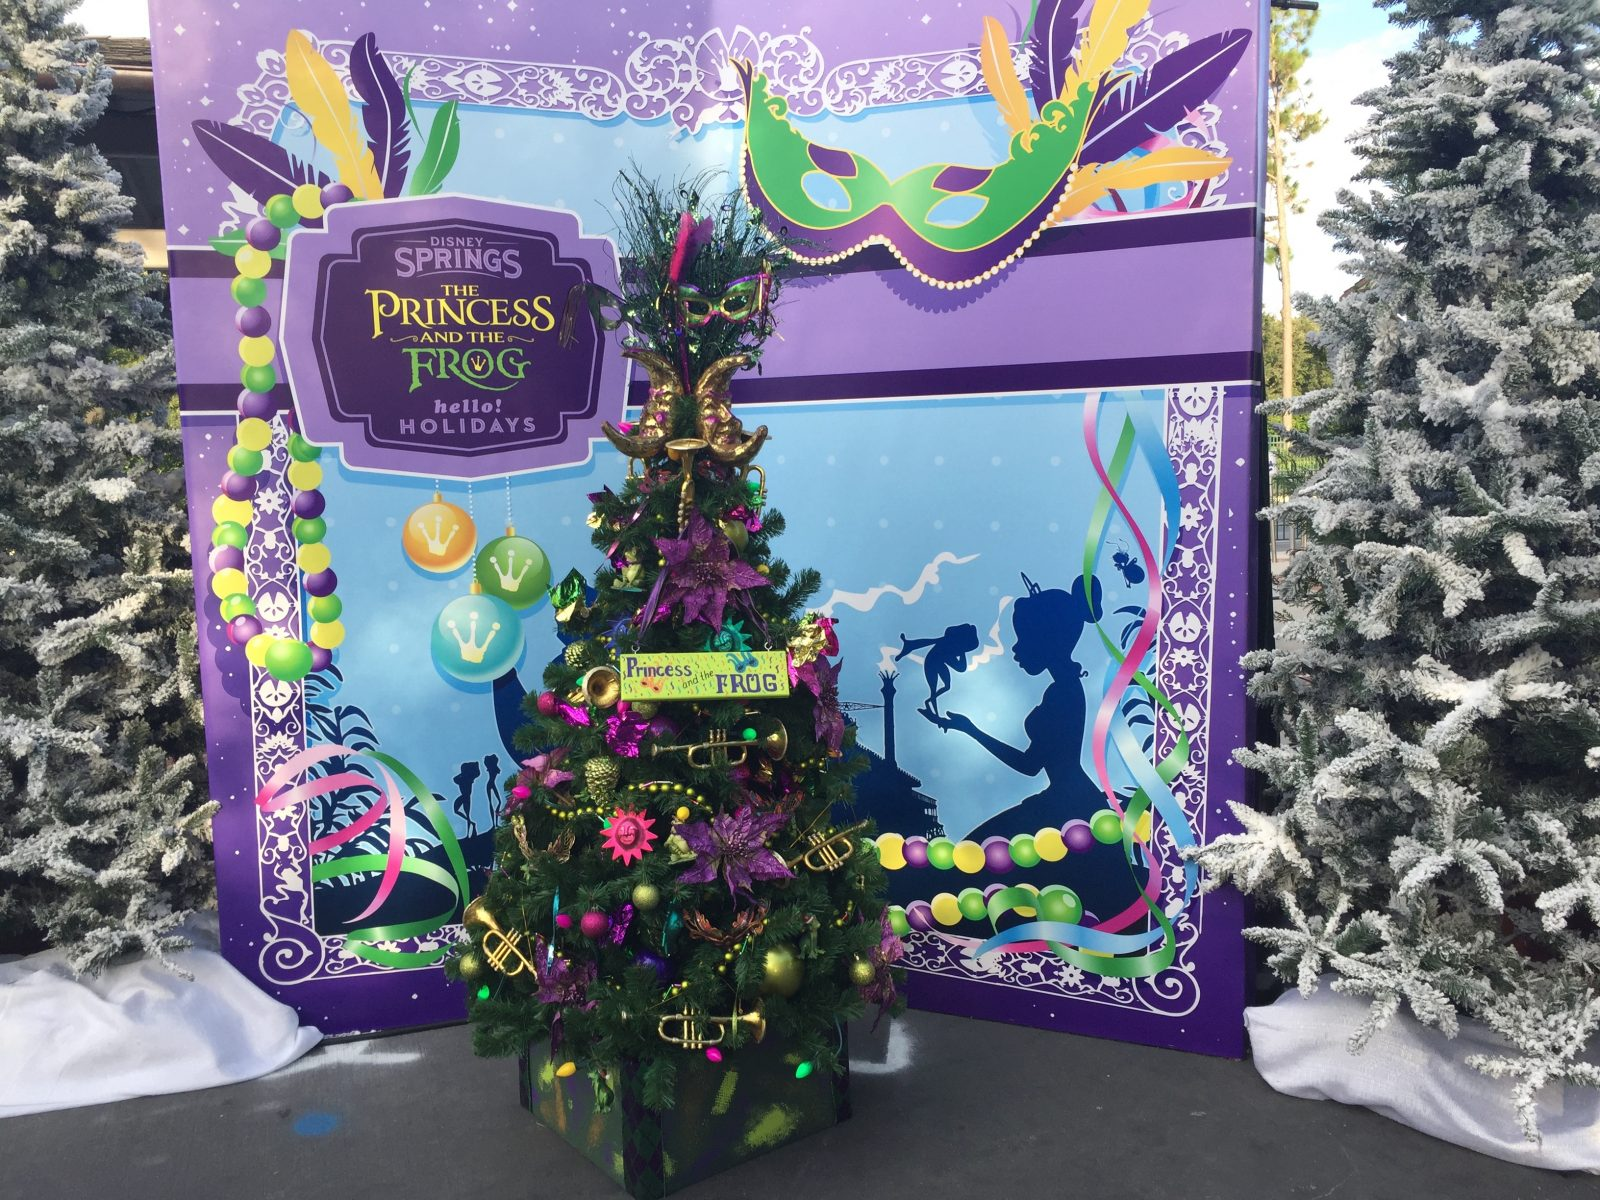 Christmas Tree Trail Disney Springs 2016 -